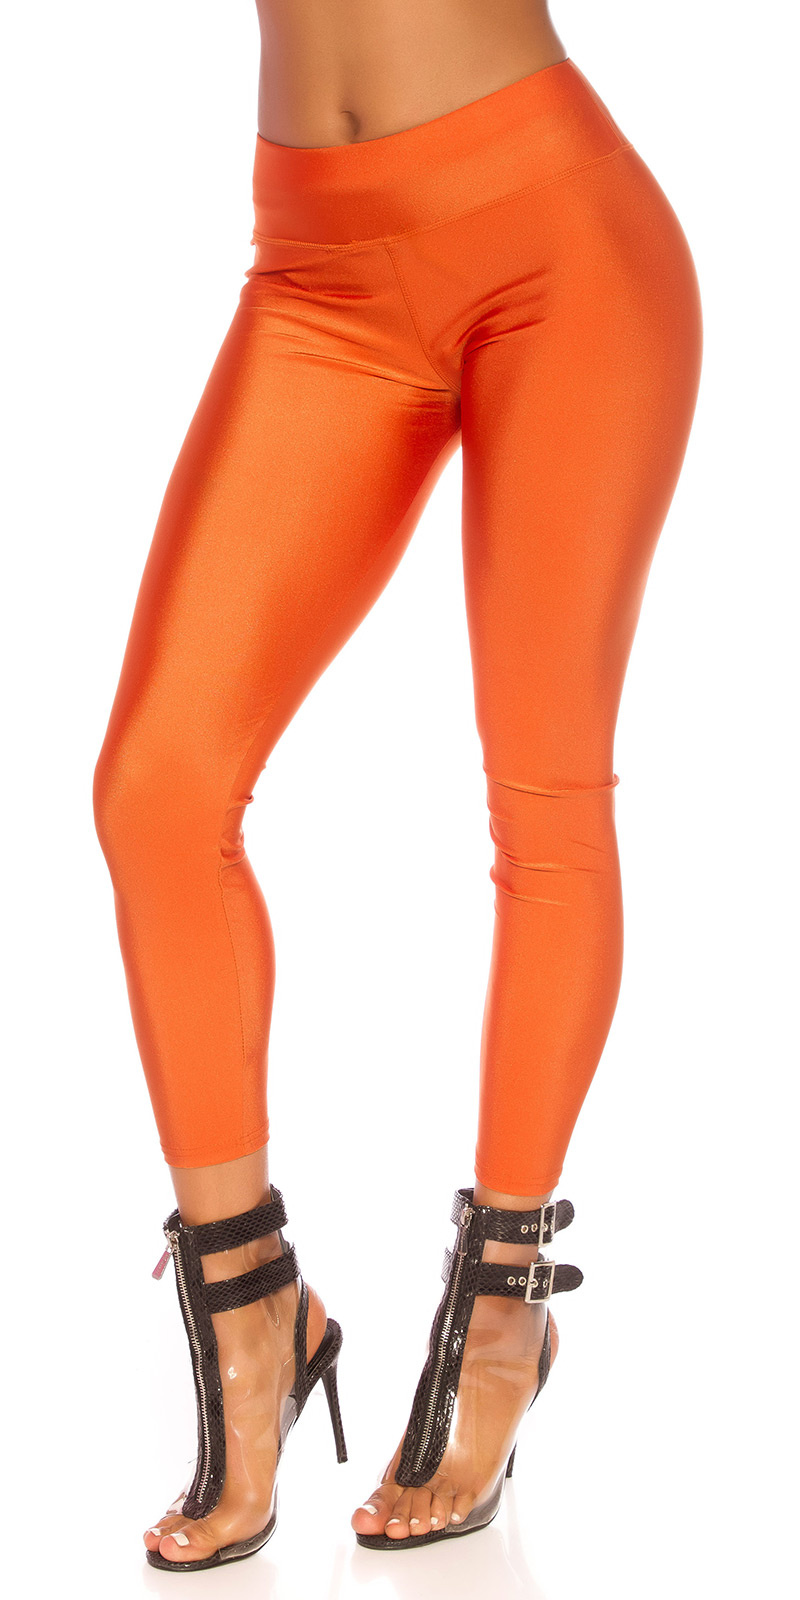 Sexy metallic-look leggings oranje